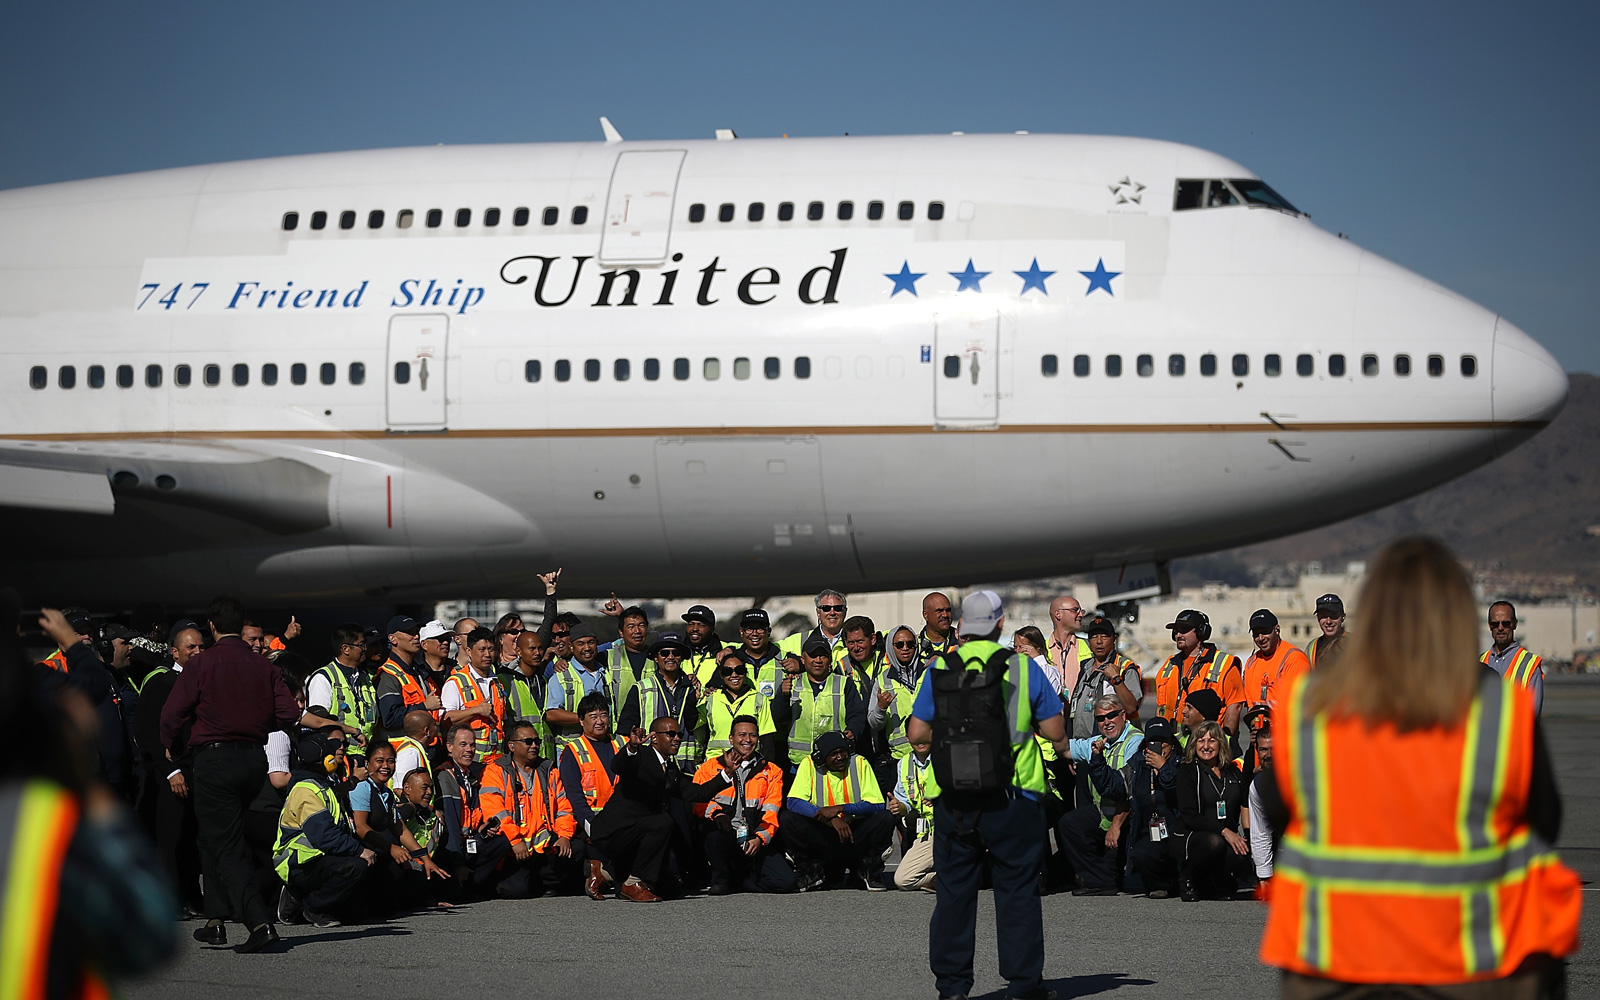 United said farewell to the Queen of the Skies, the Boeing 747, in a last flight from San Francisco to Honolulu, on Nov. 7, 2017.